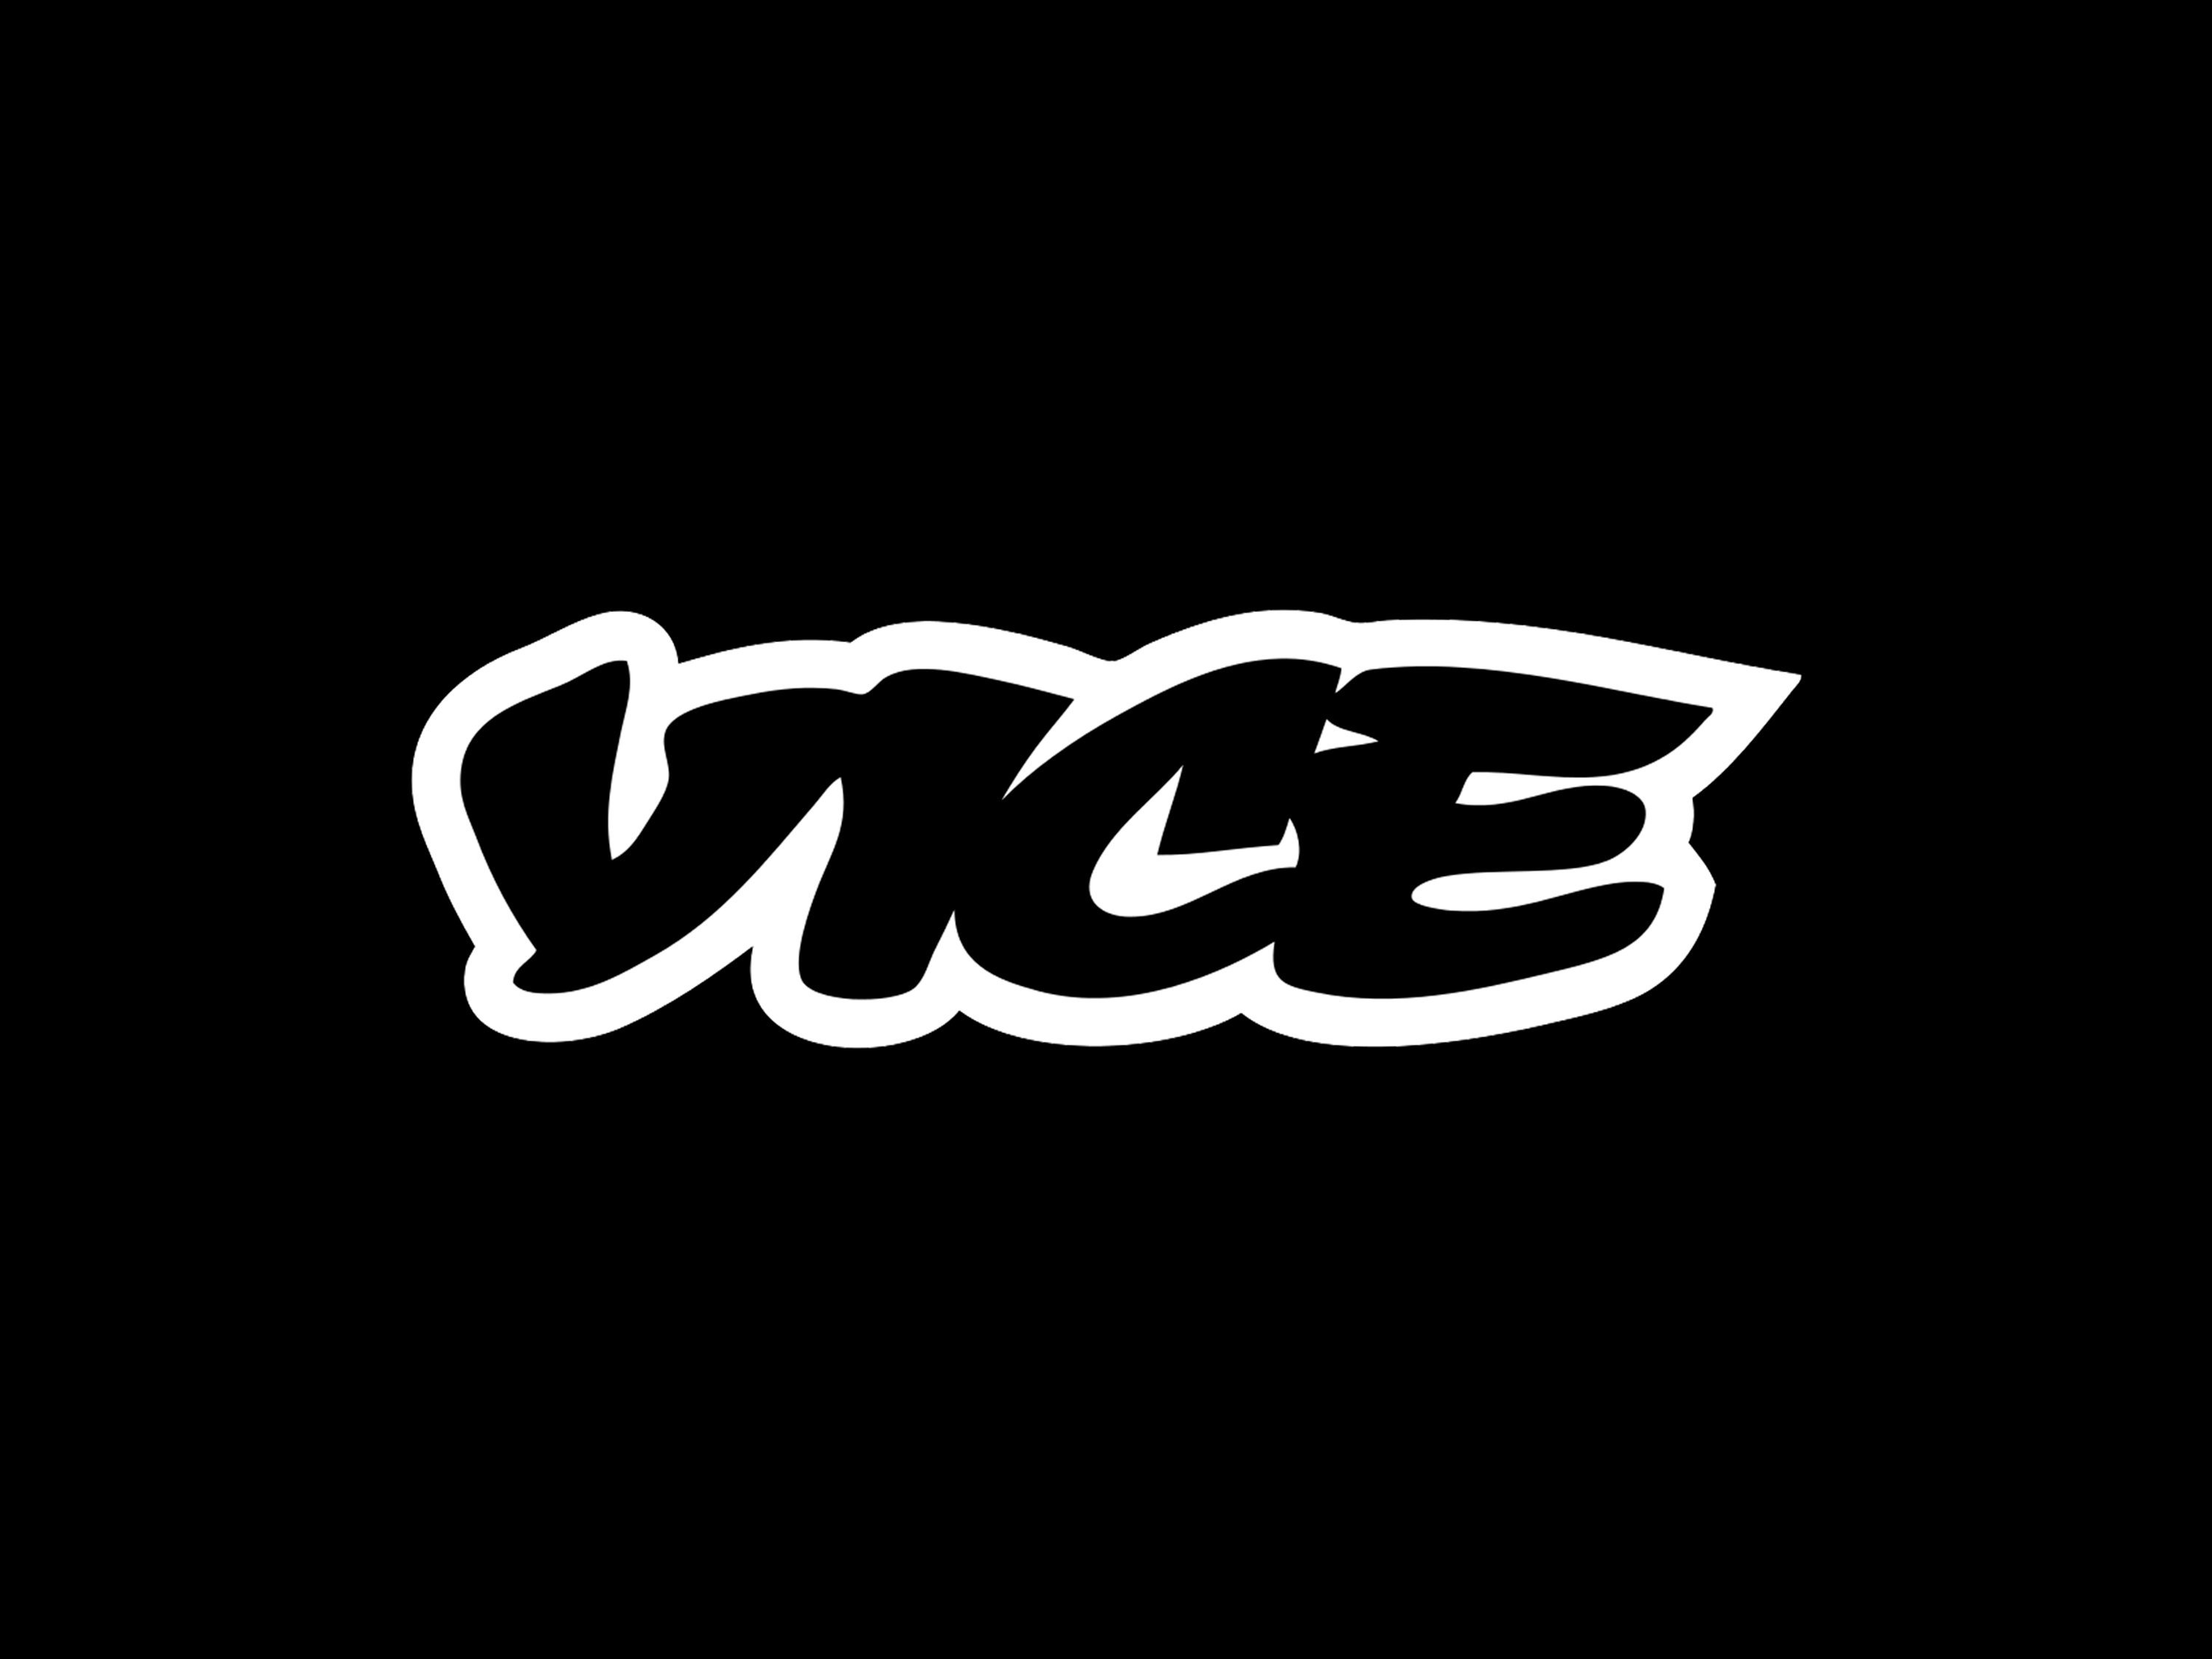 Vice digital chief out after suspension over sexual harassment allegations